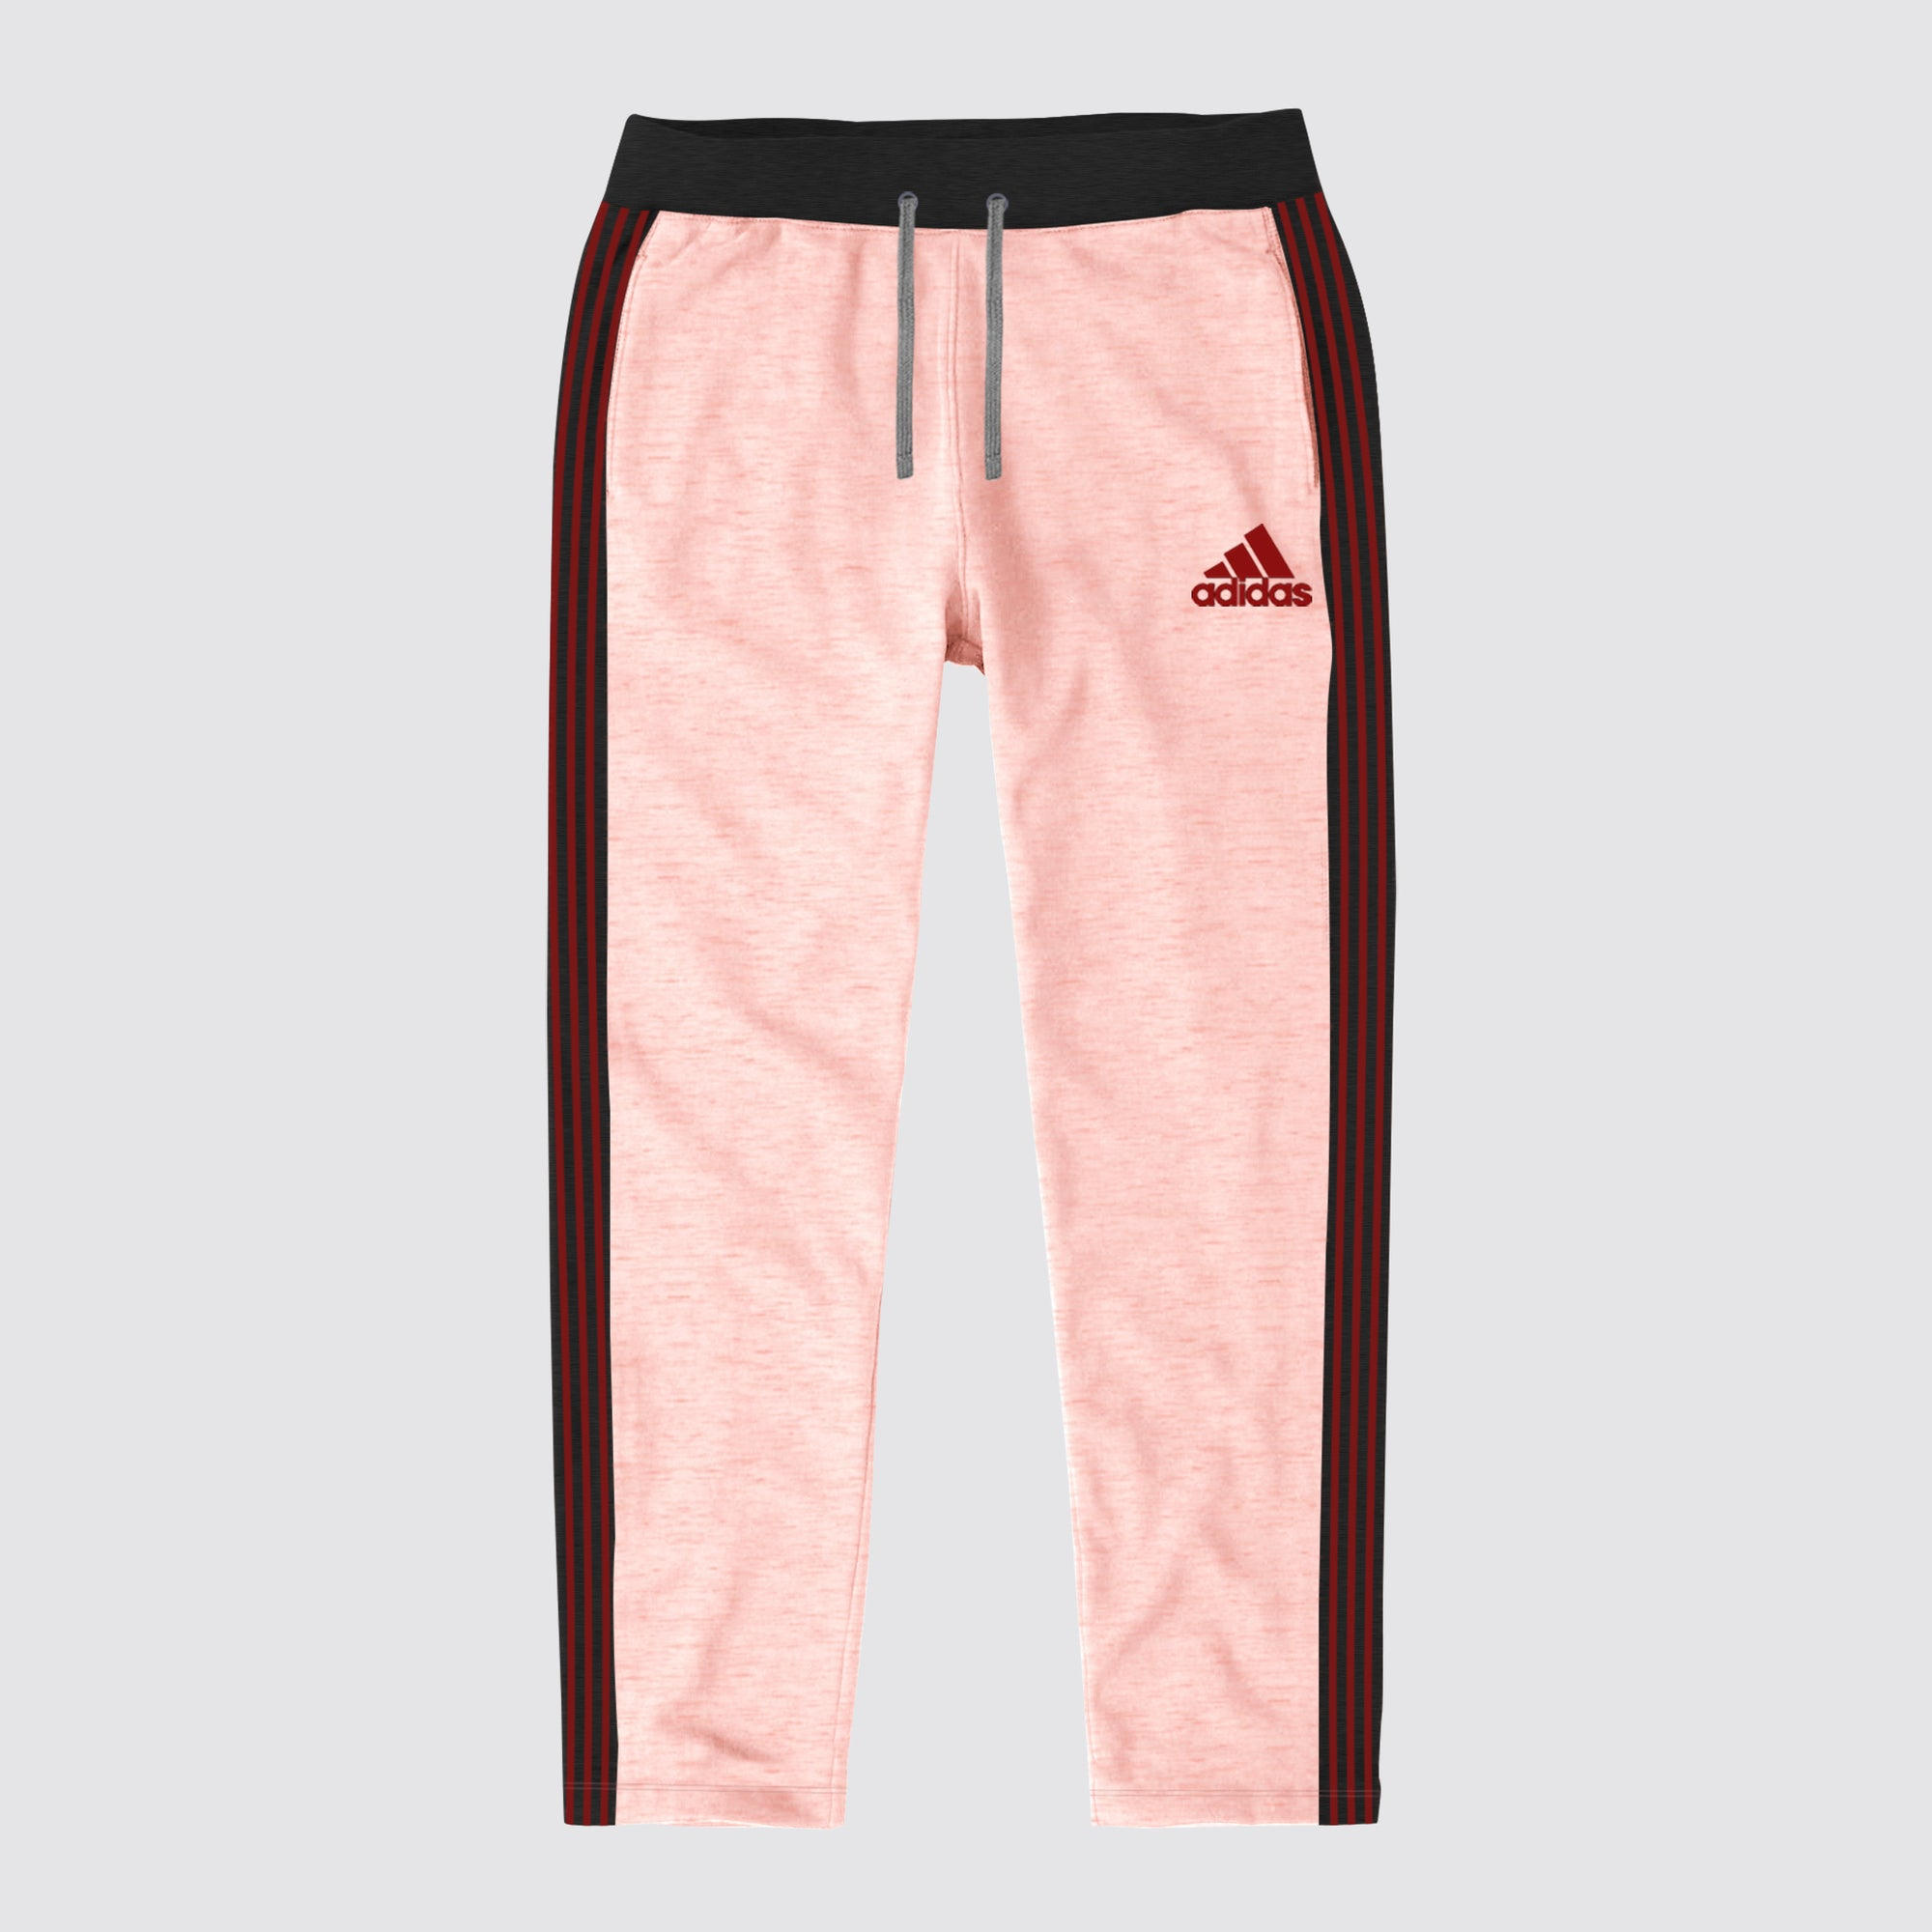 Adidas Single Jersey Regular Fit Trouser For Men-Light Pink Melange with Charcoal & Red Stripe-BE8658